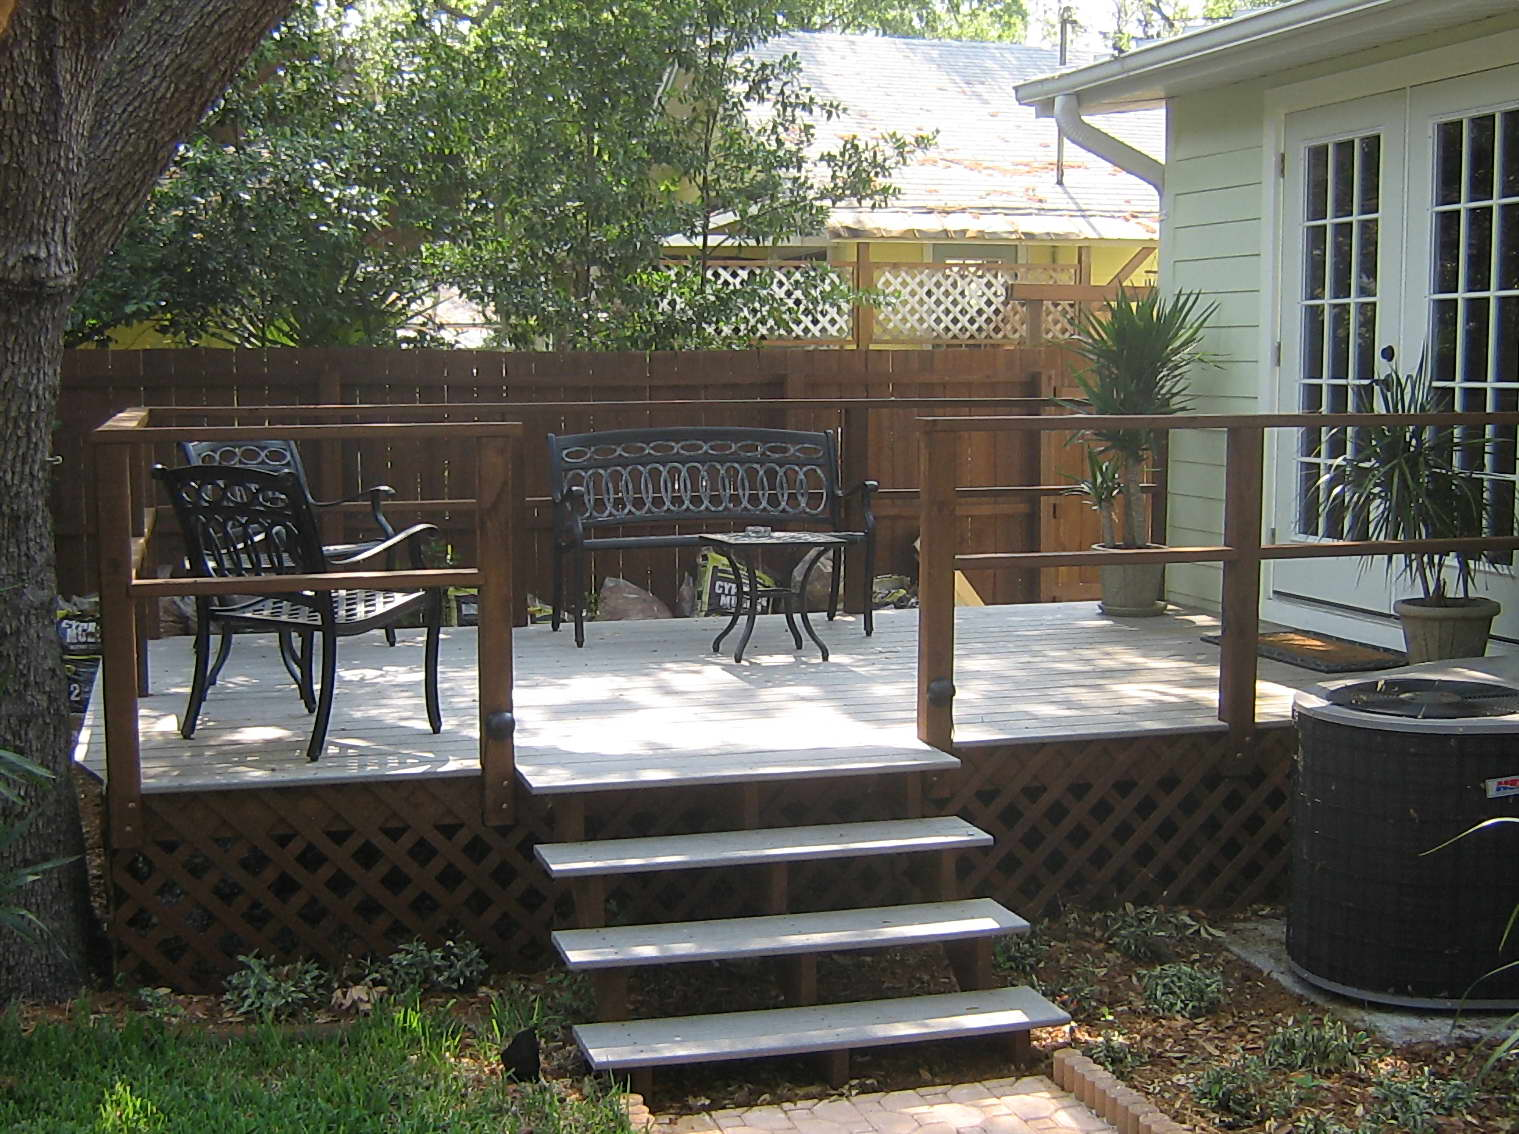 Simple Designs Deck Stair Handrail Rickyhil Outdoor Ideas